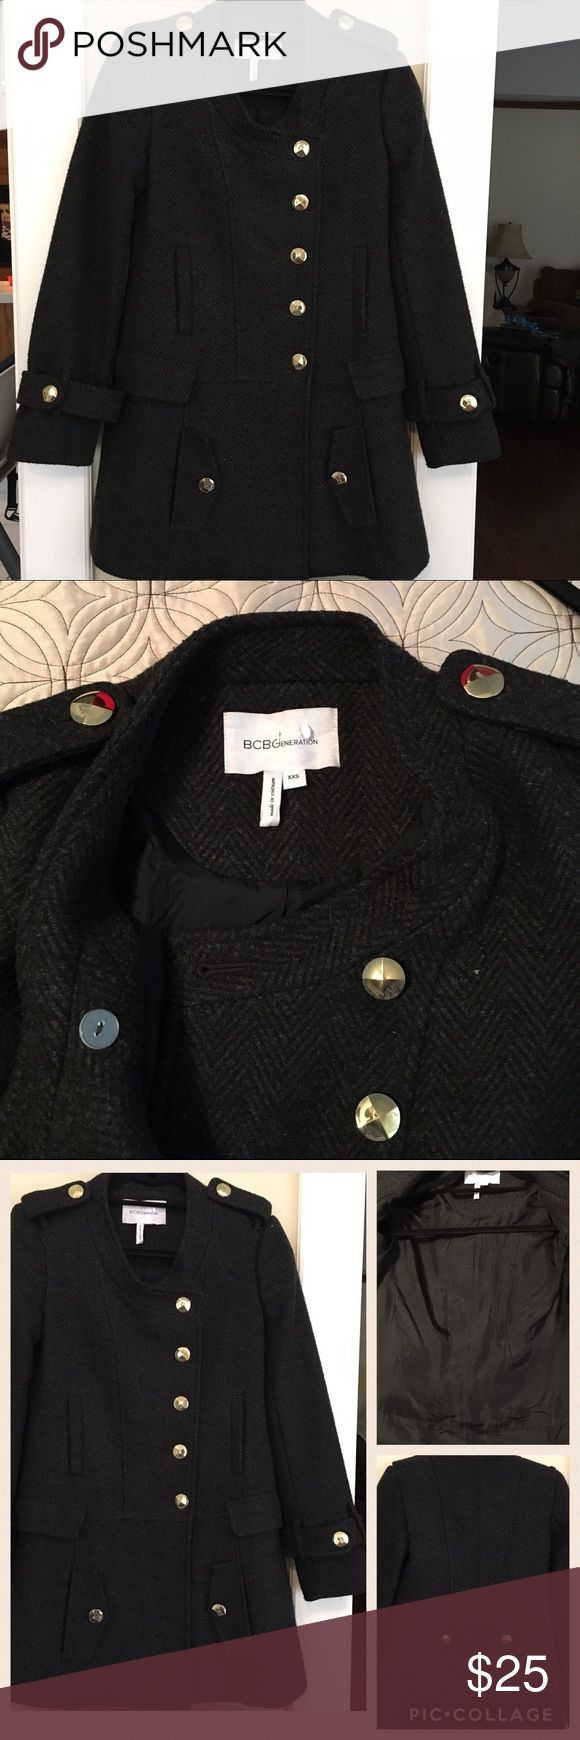 BCBG coat XXS Wool blend BCBGeneration coat with gold buttons throughout. Lots of pockets in this coat, great to stash gloves, phone and tissues during cold weather-6 total!! Some of the top buttons have slight fading as pictured. Not sure if it's from wear or dry cleaning it. There's so many buttons though you can interchange them. Great used condition, lining in excellent condition. Jackets & Coats